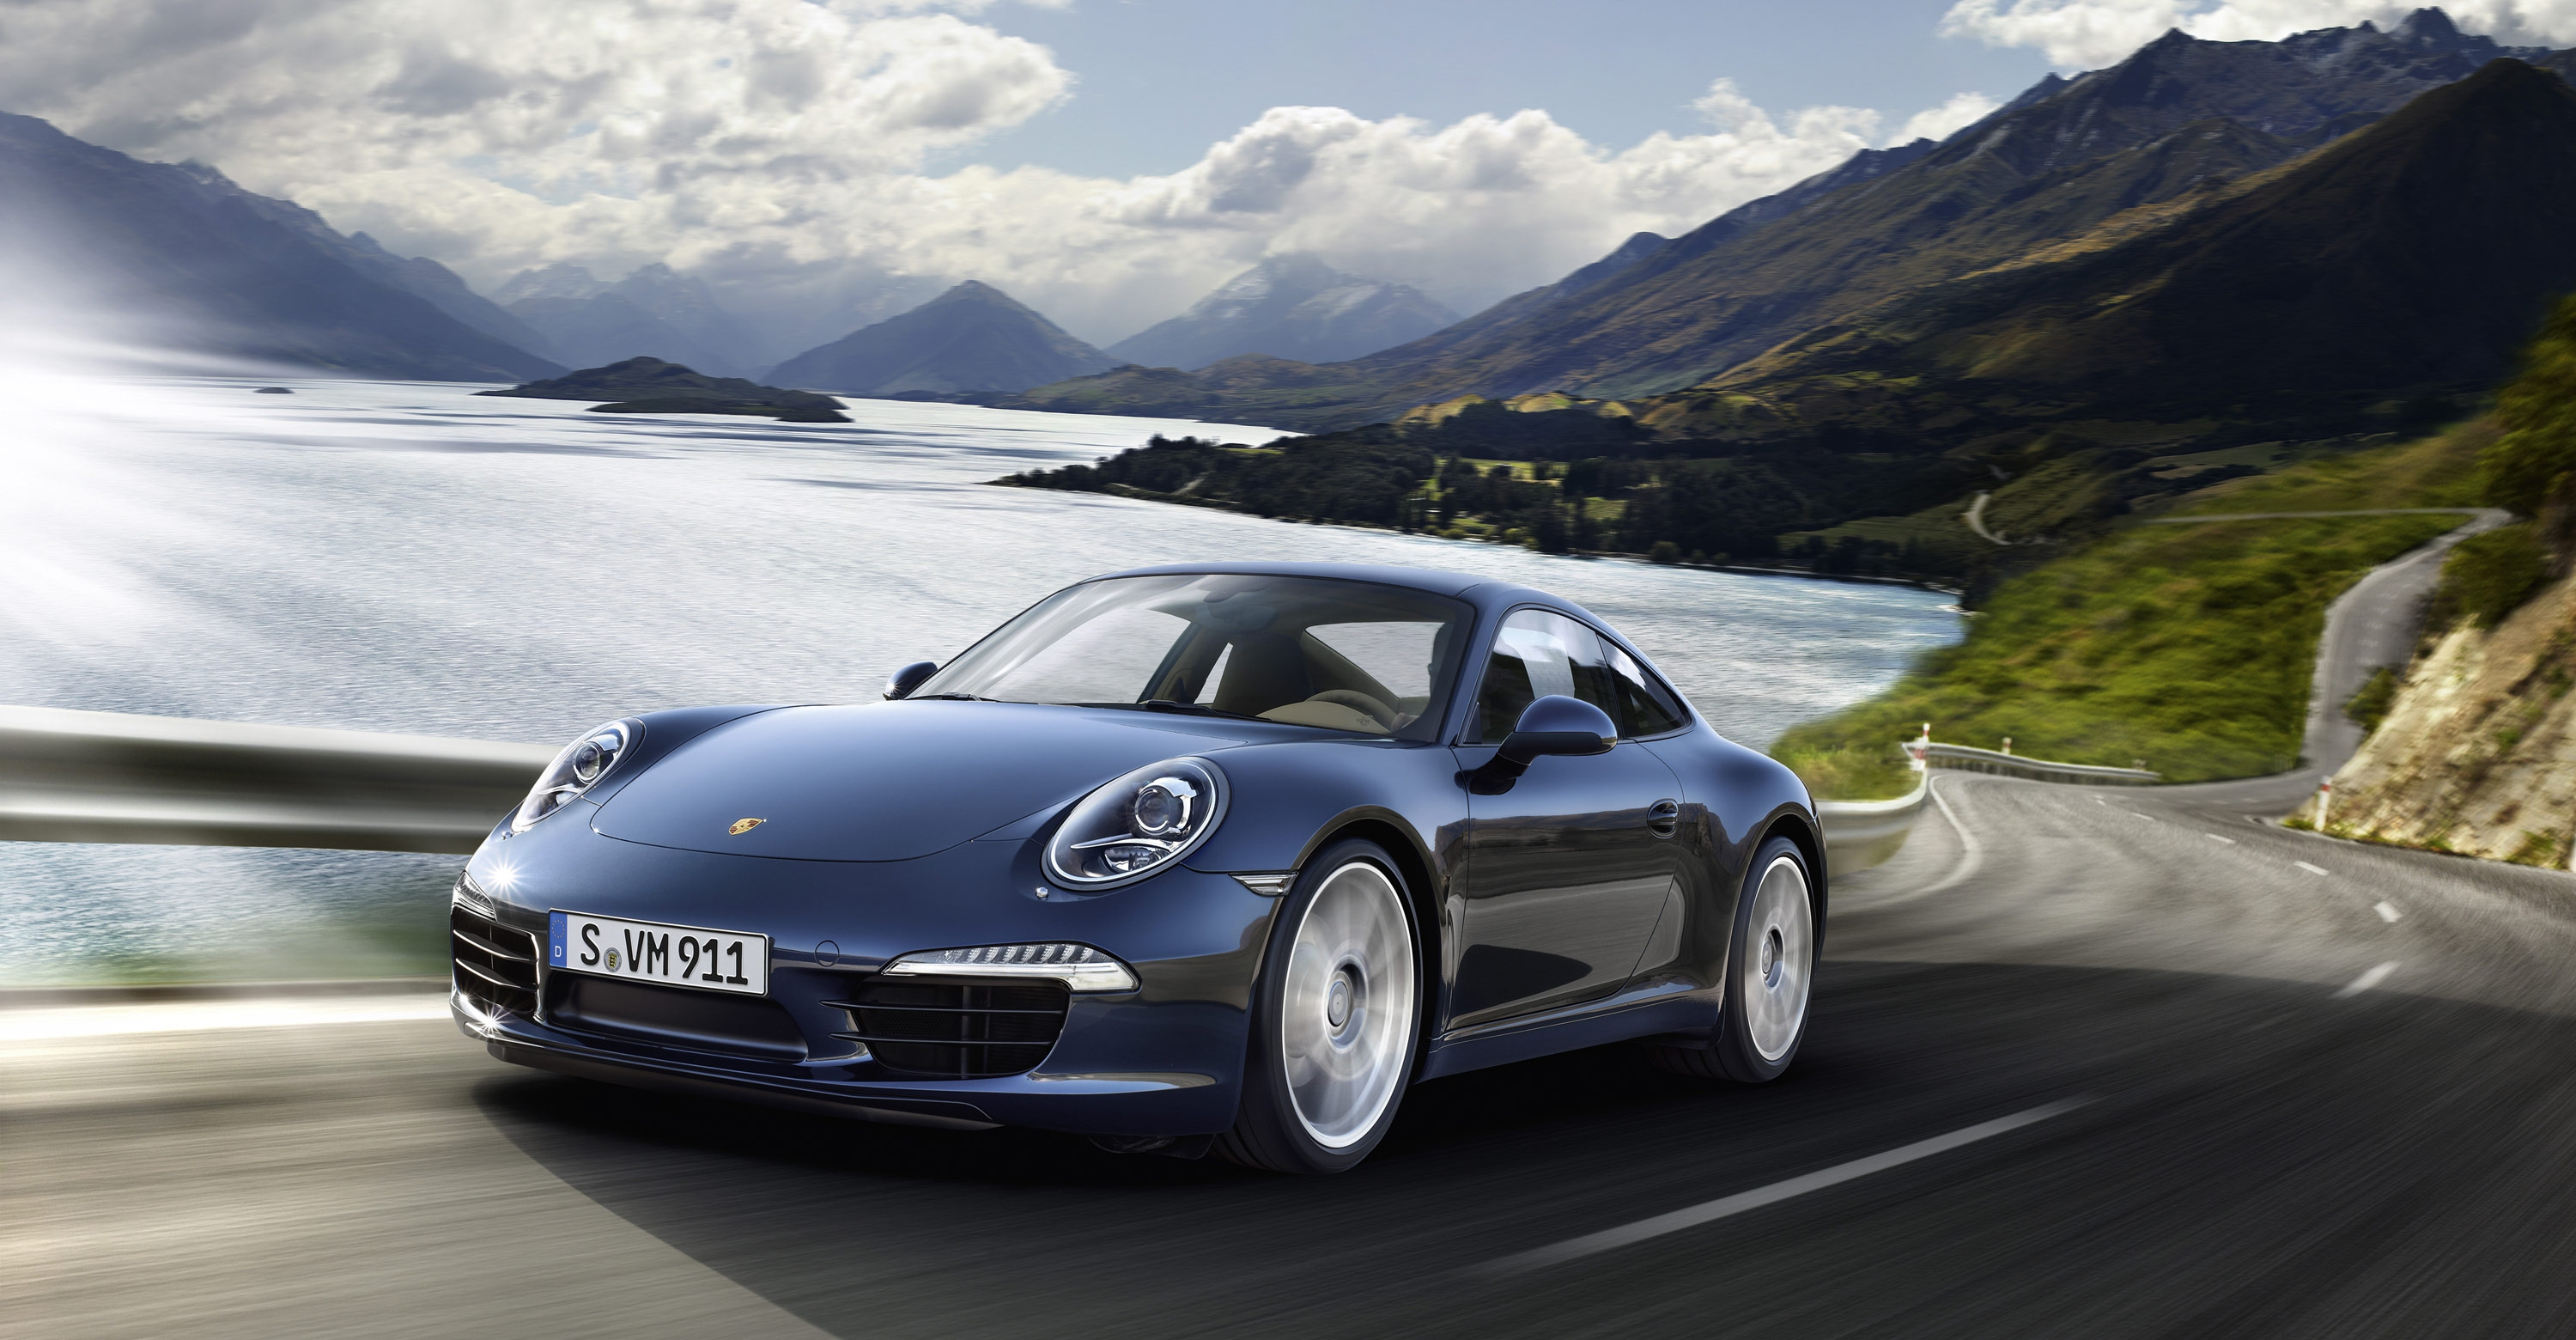 Porsche 911 Hd Background